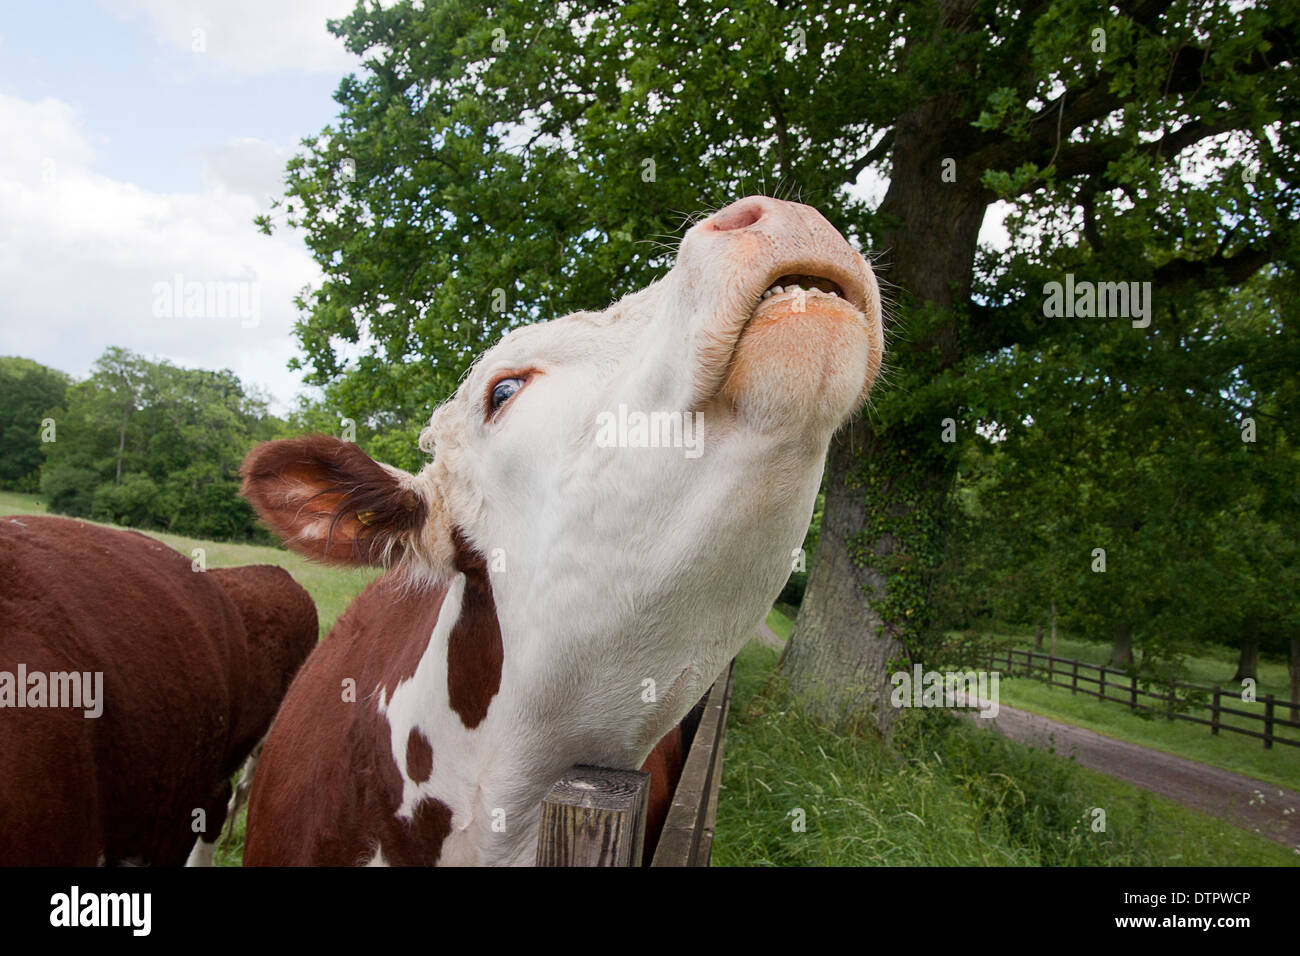 hereford-cow-mooingscratching-head-on-fe